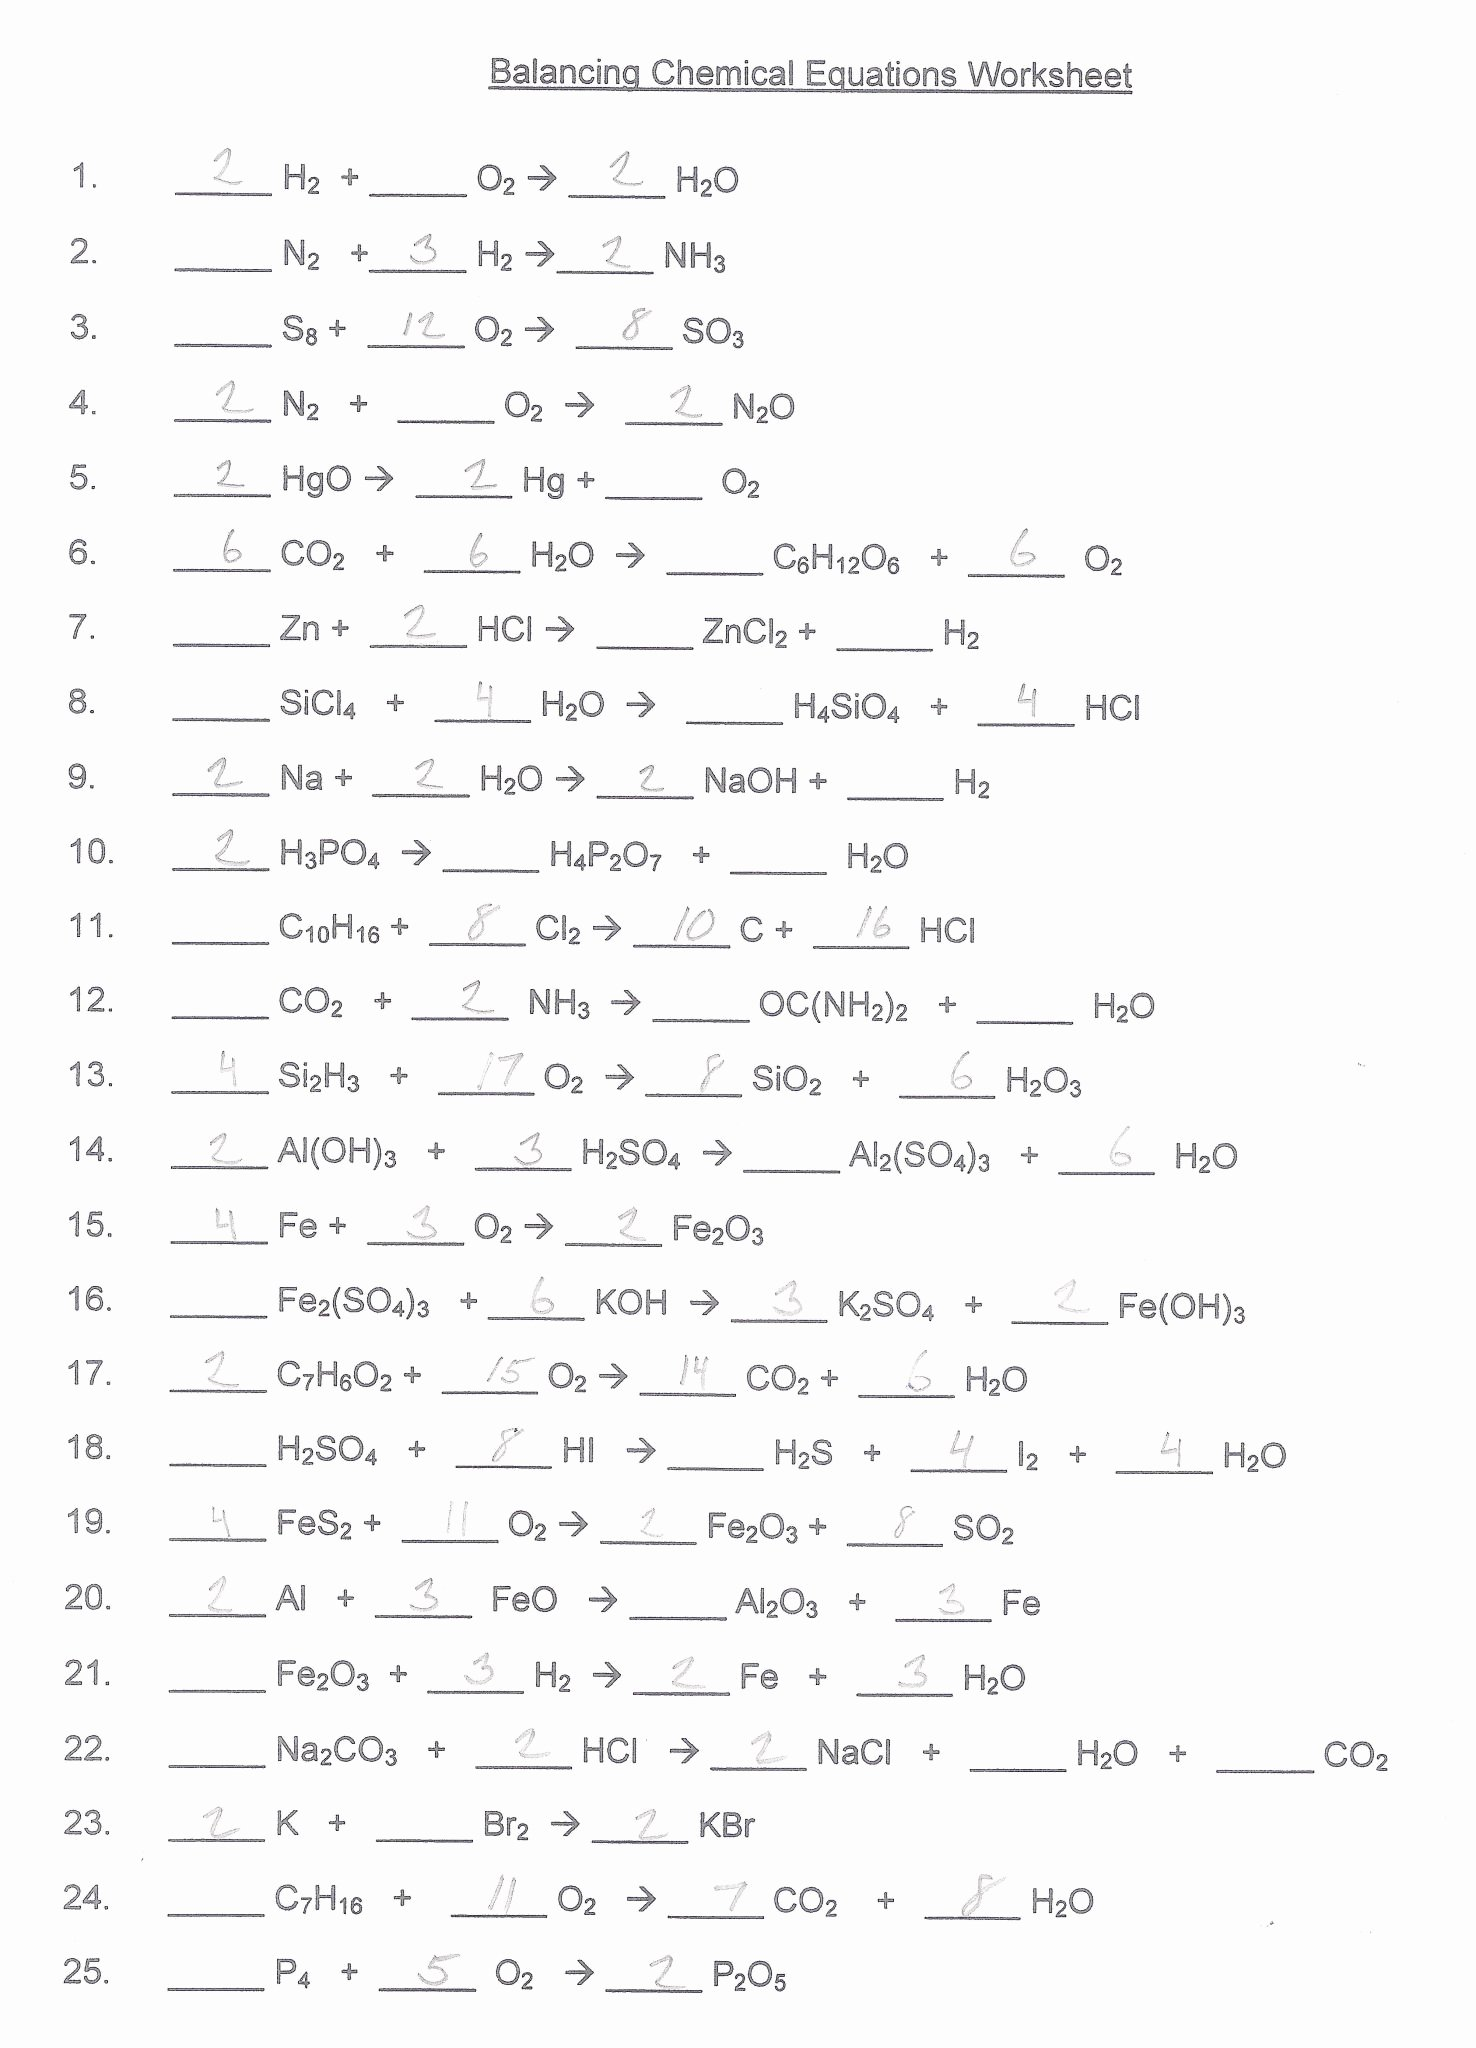 Specific Heat Worksheet Answers Lovely Calculating Specific Heat Worksheet Answers